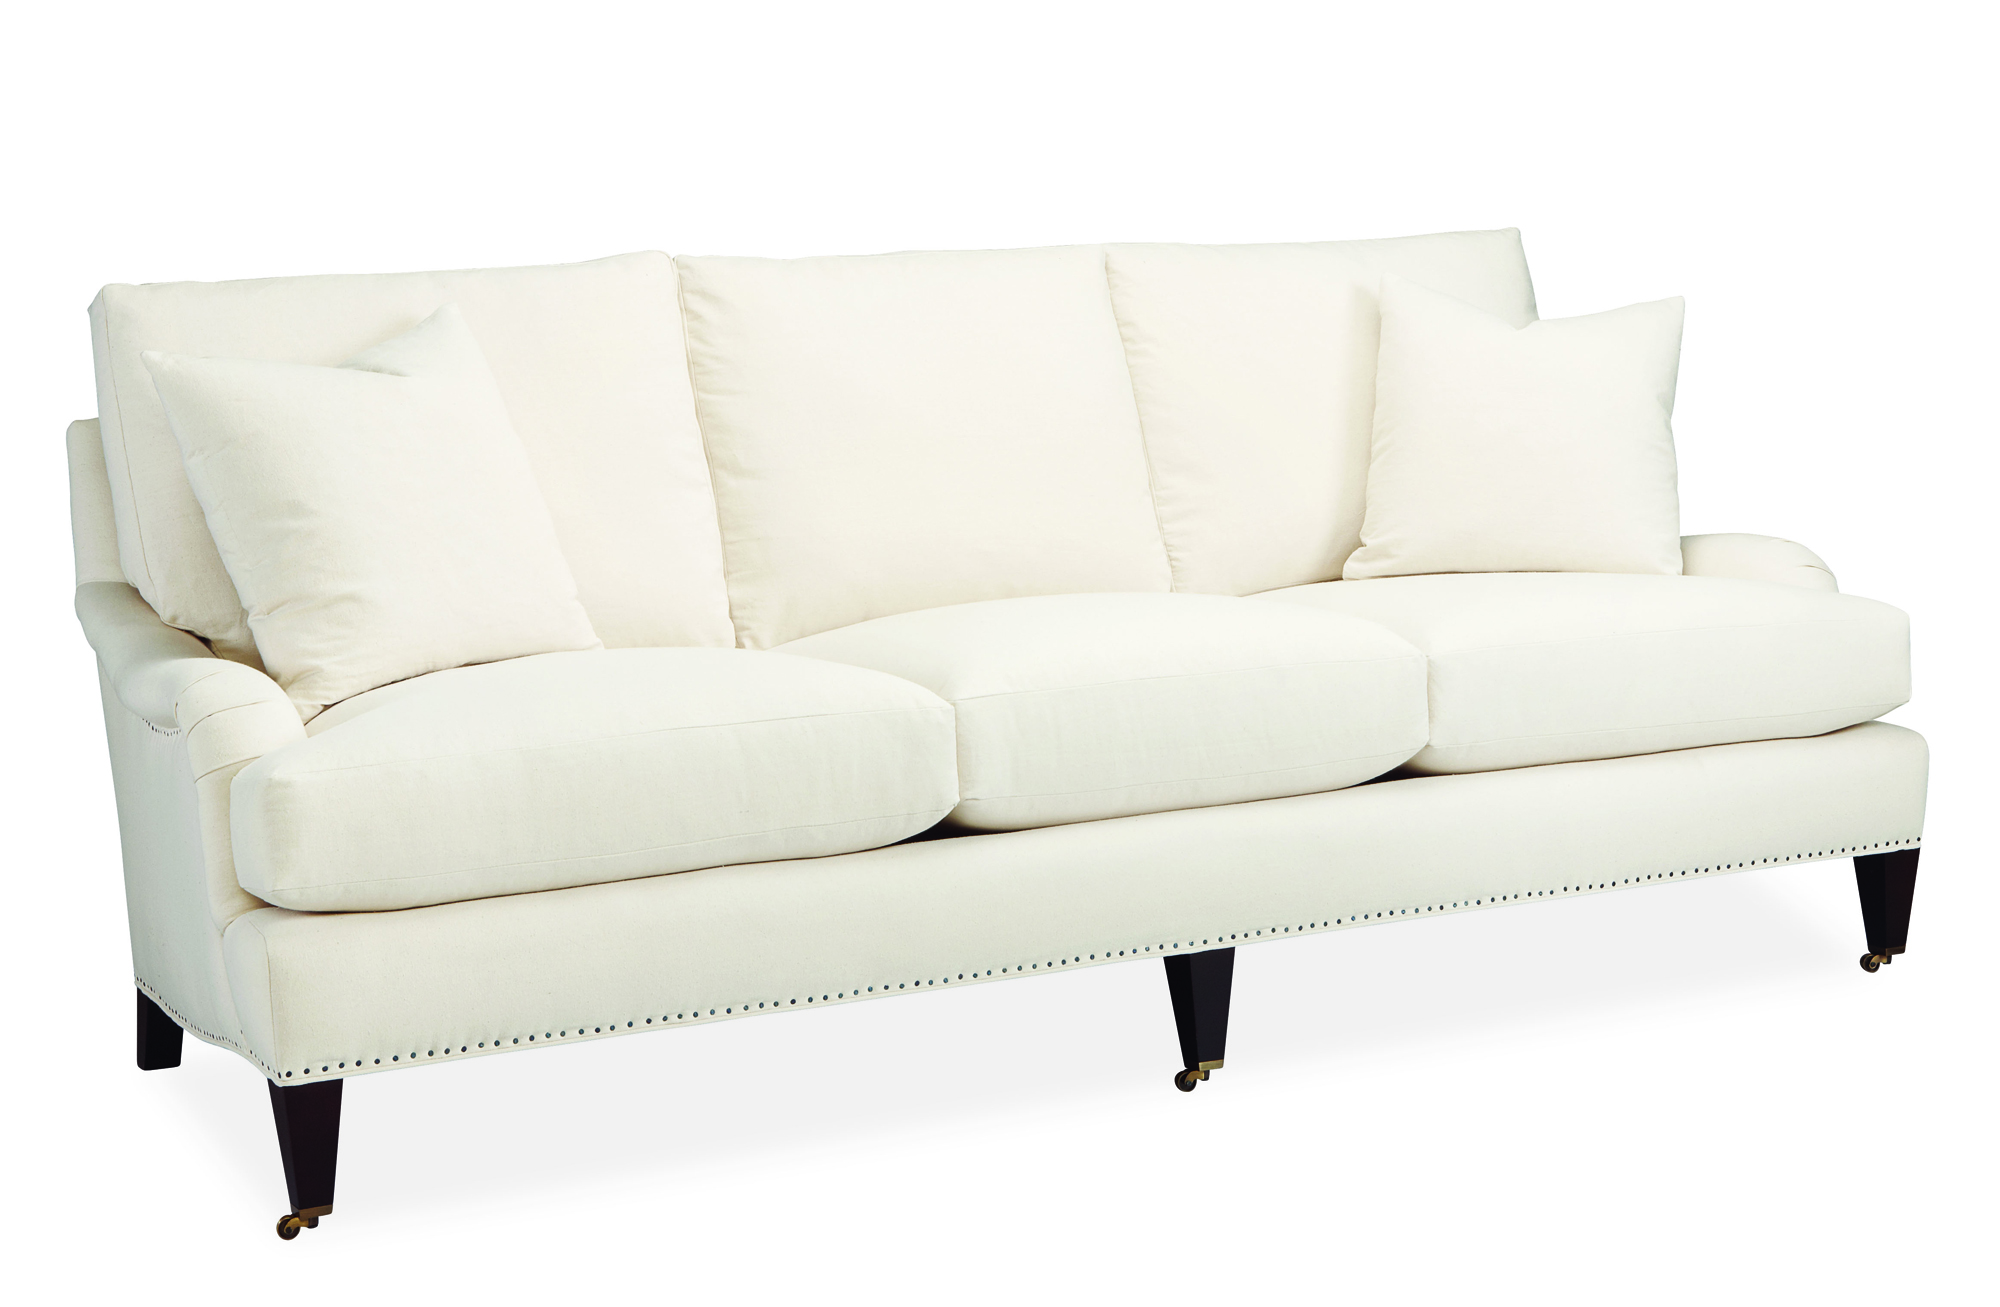 Lee Furniture Sofas Industries Richard Parks